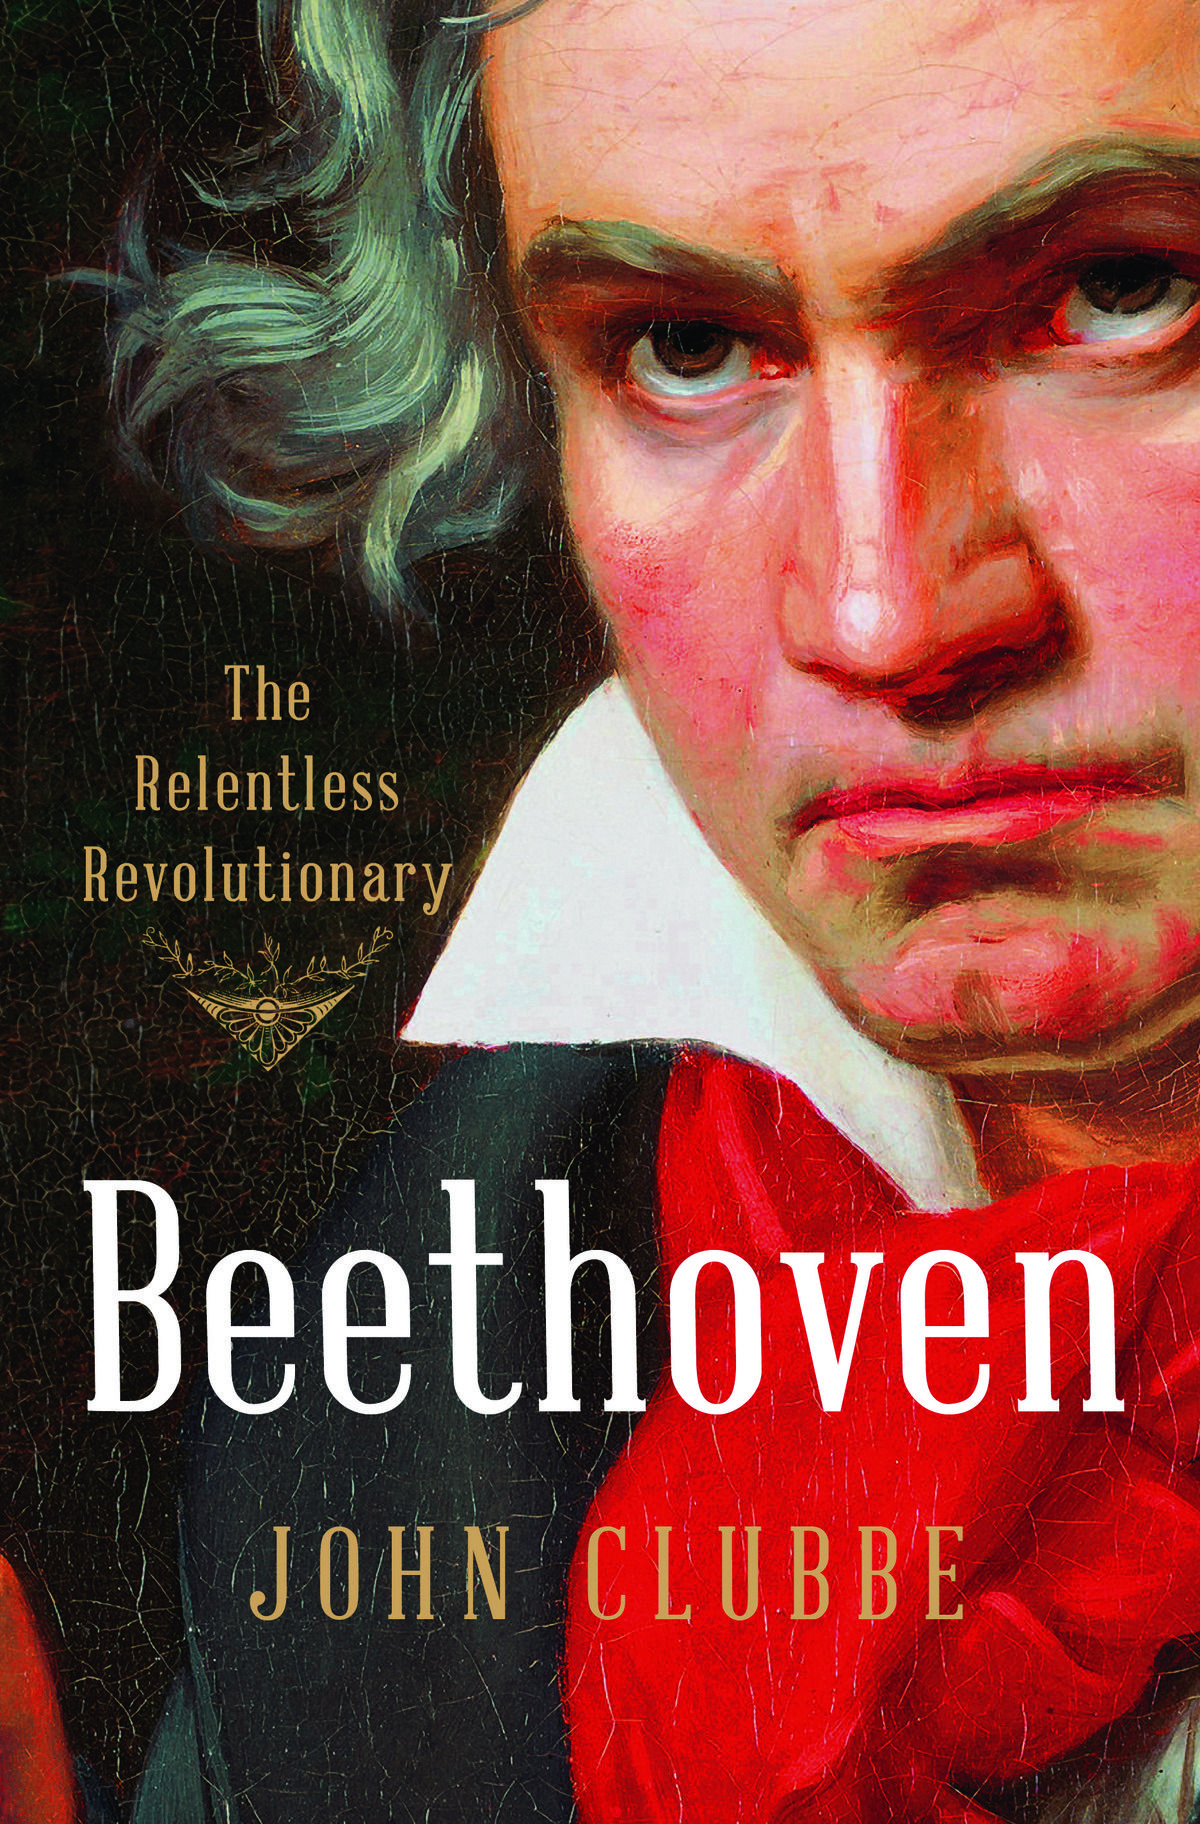 Beethoven The Restless Revolutionary by John Clubbe